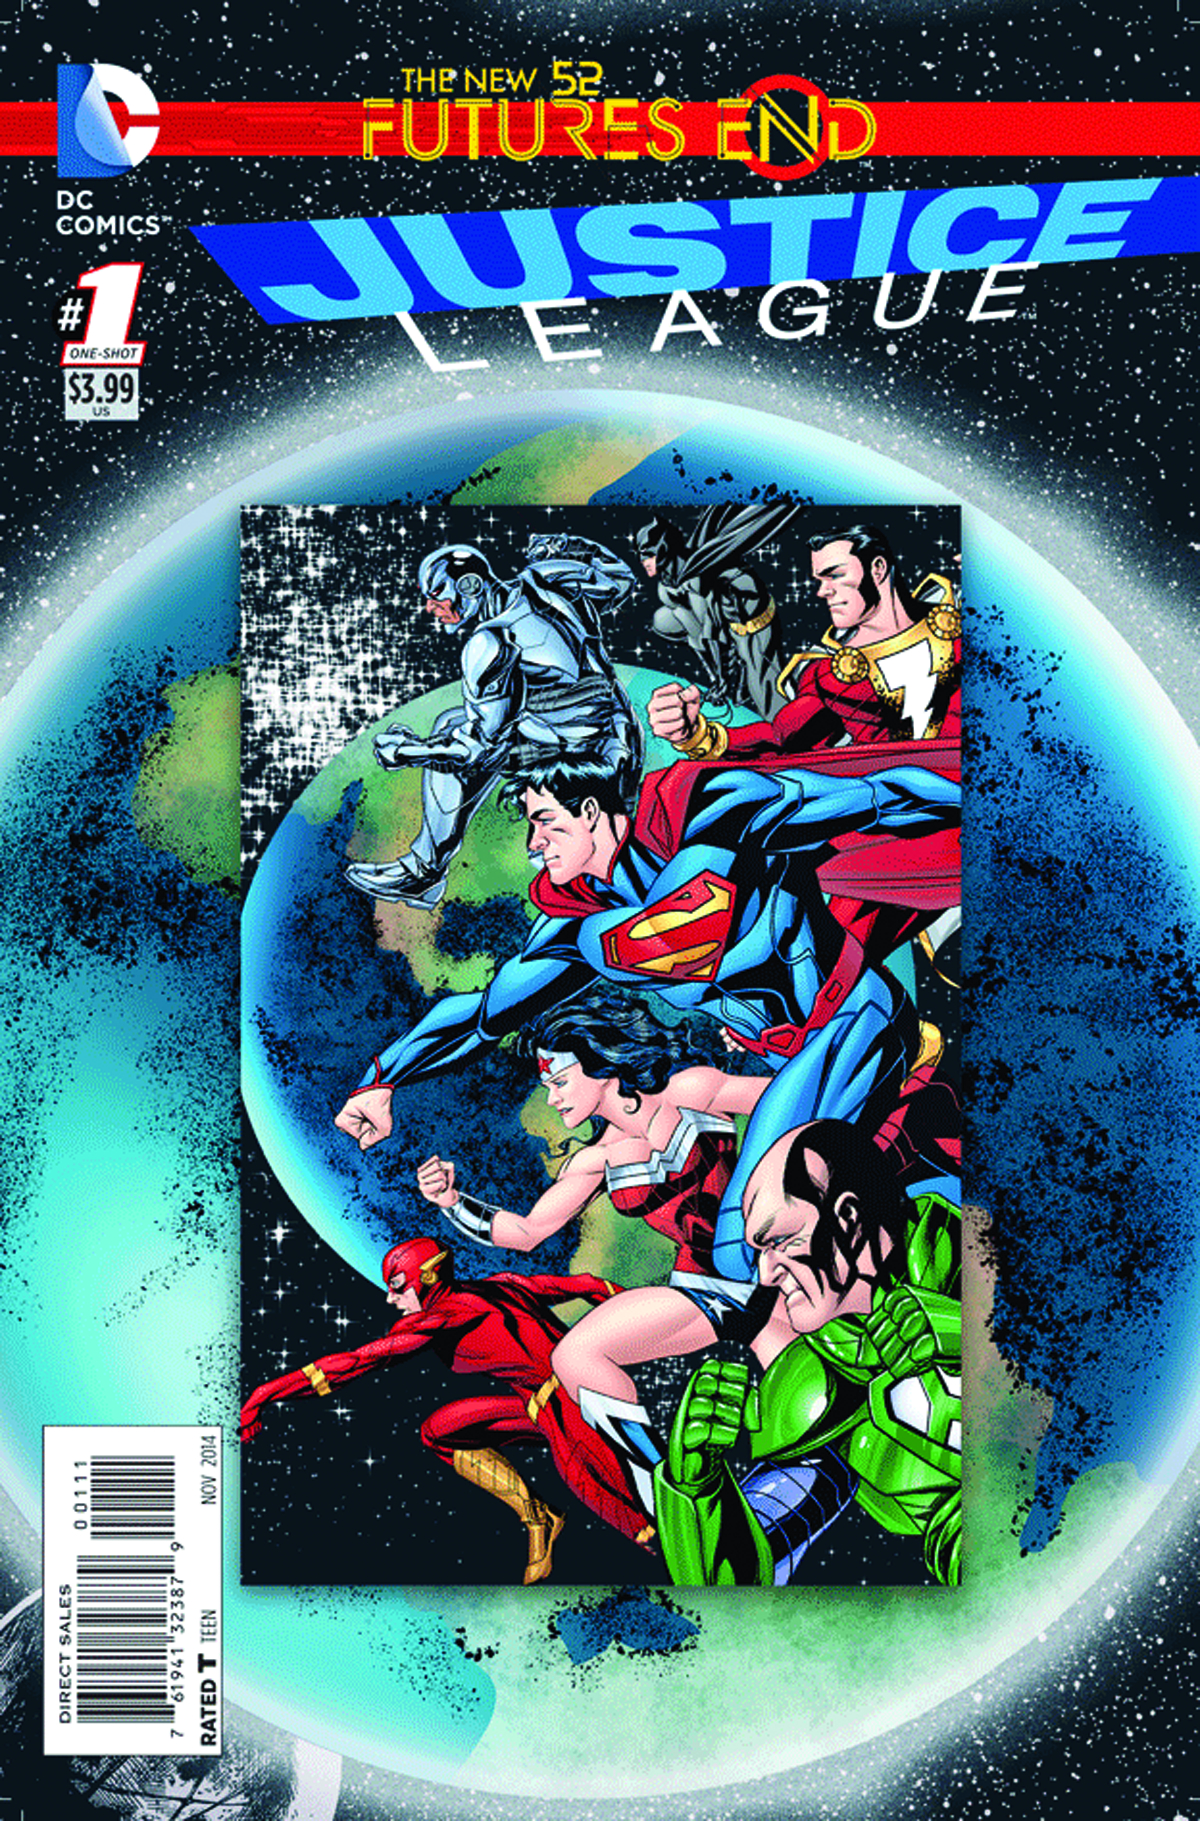 JUSTICE LEAGUE FUTURES END #1